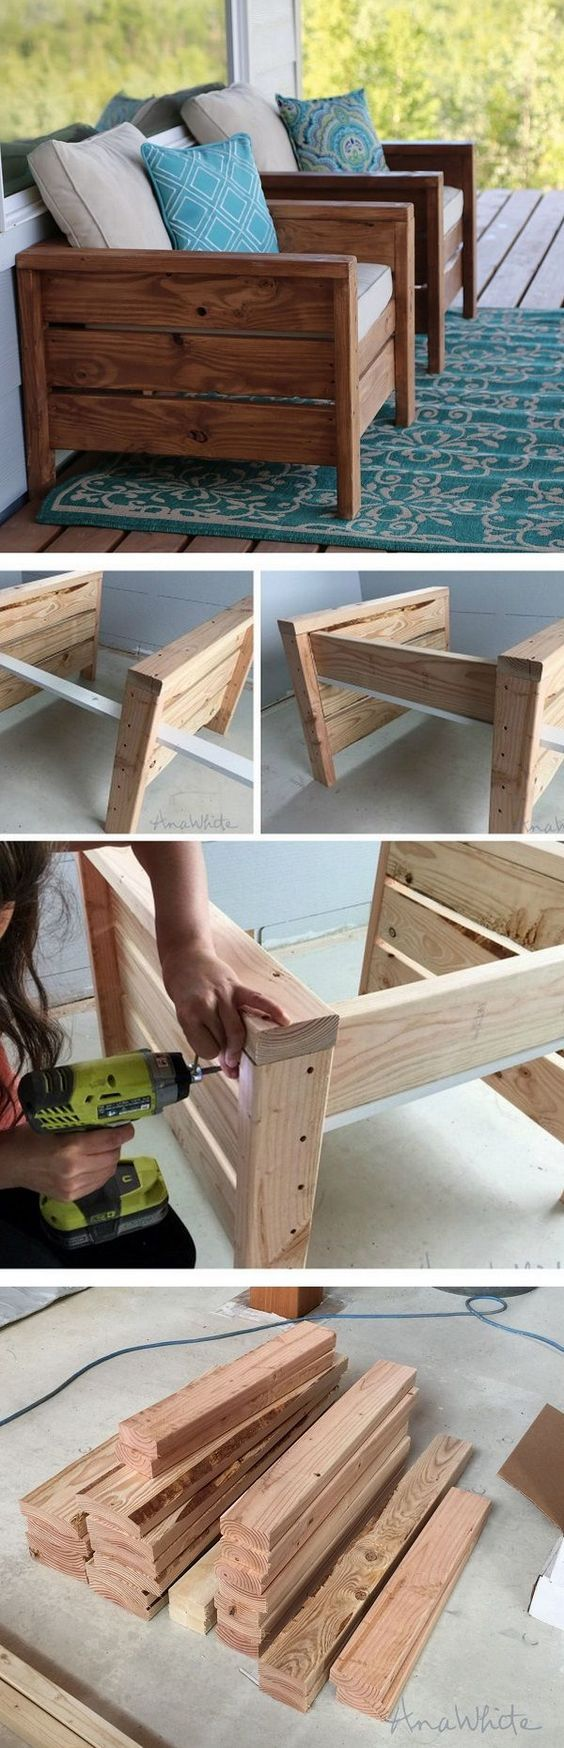 18 Outstanding u0026 Easy DIY Wood Craft